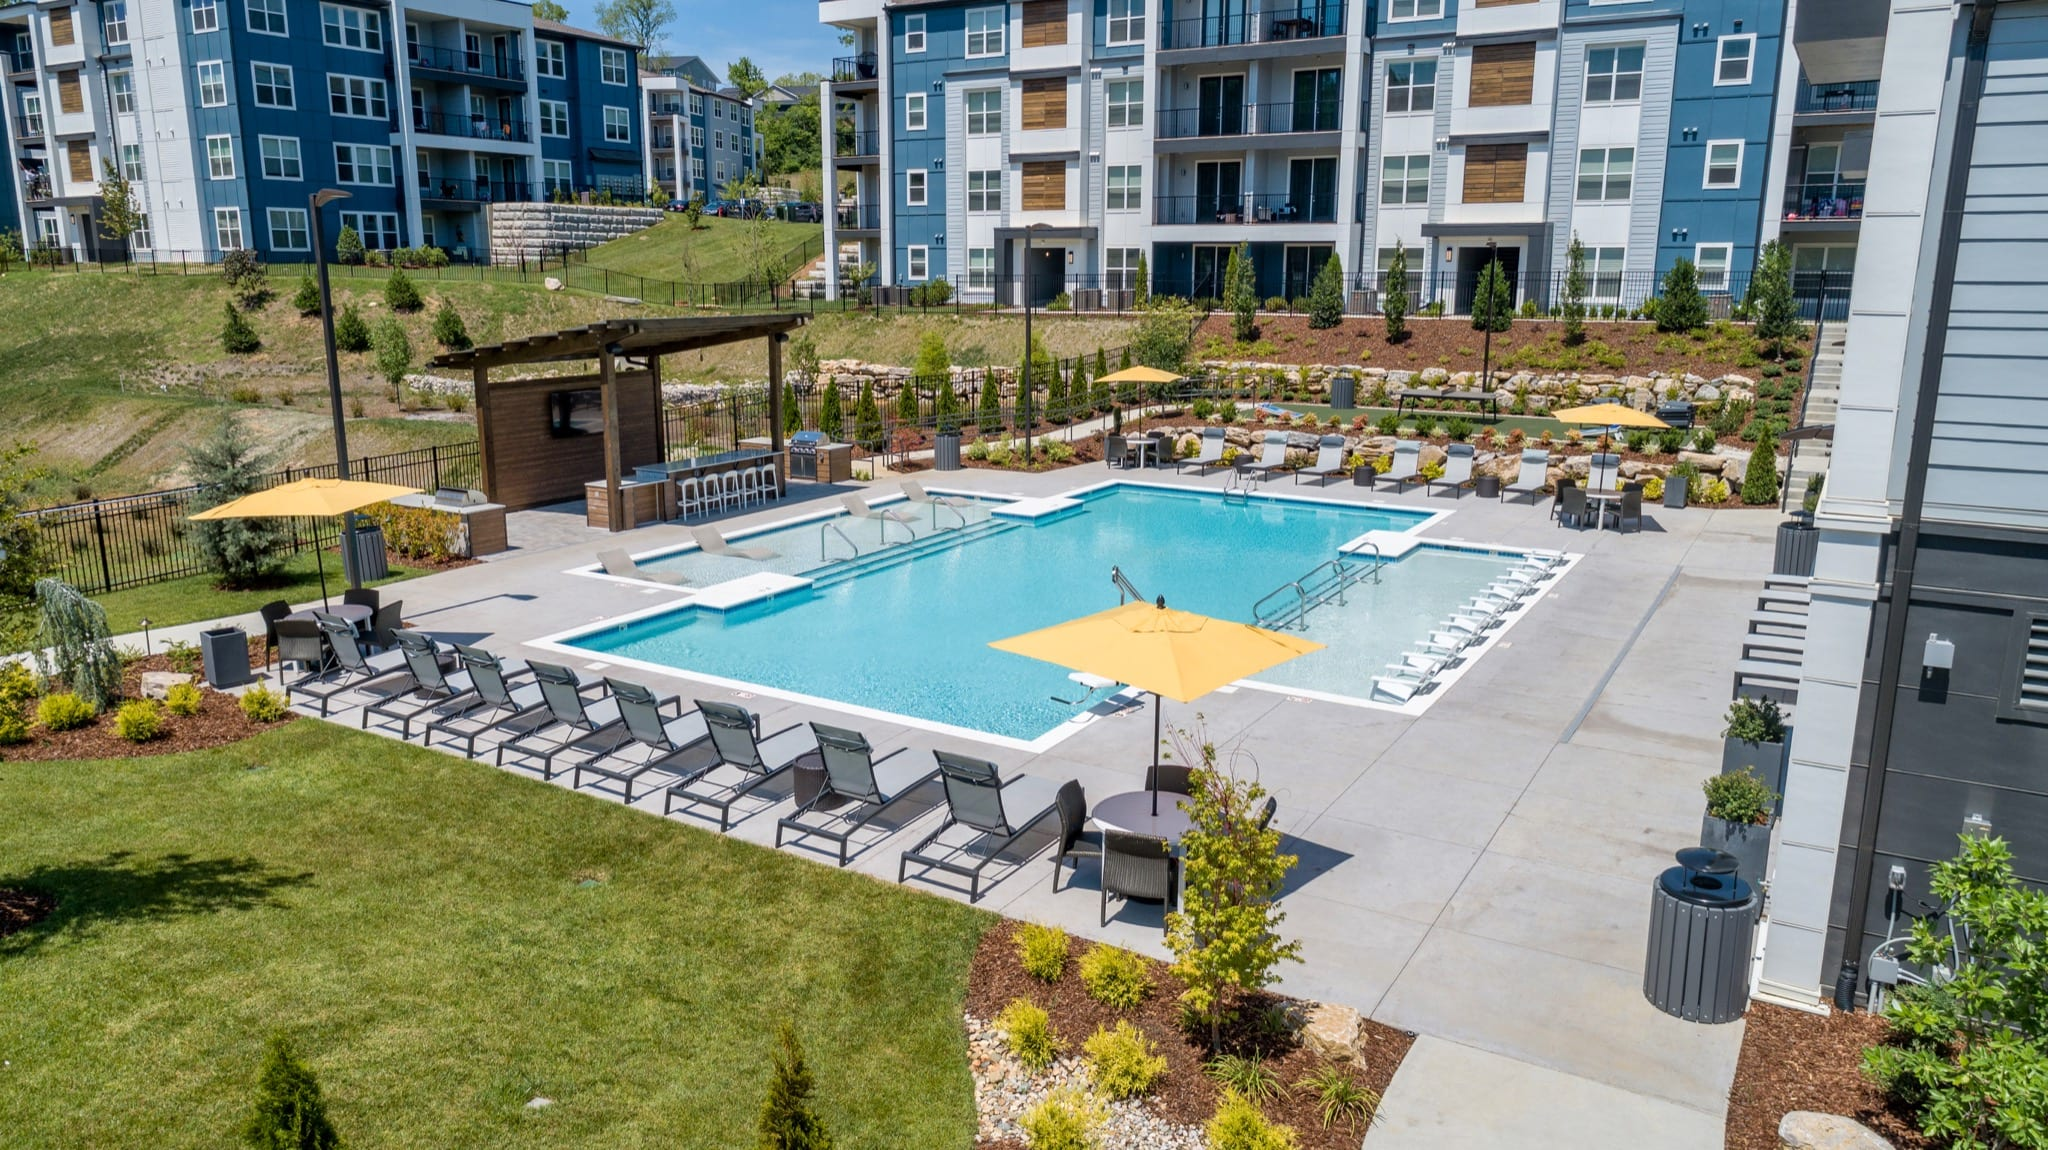 Preferred Apartment Communities Completes Acquisition of 301-Unit The Anson Multifamily Community in Nashville Submarket